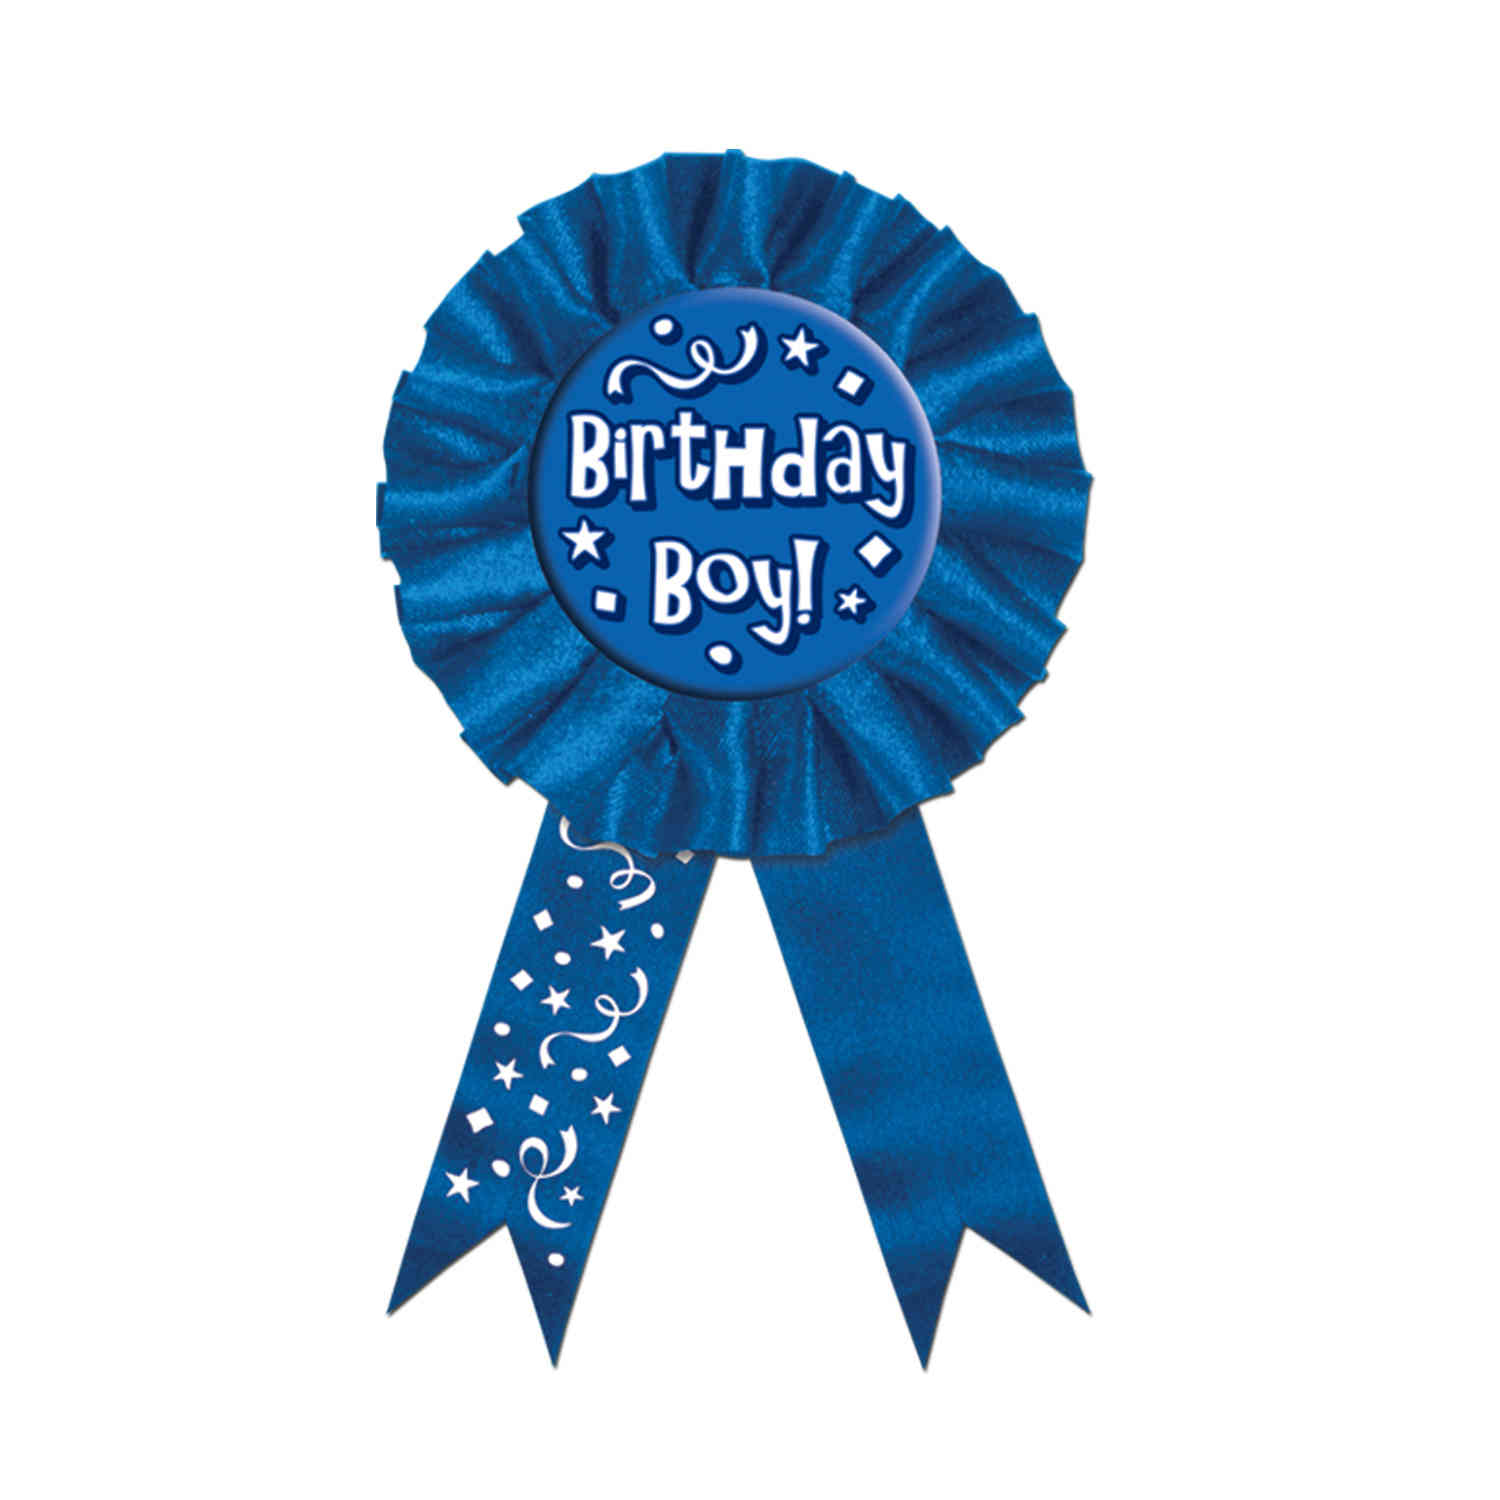 Birthday Boy! Award Ribbon (Pack 6) Blue Ribbon, Birthday accessories, Birthday idea, Birthday boy, Party ribbon, Wholesale party supplies, Bulk ribbons, Cheap birthday party supplies